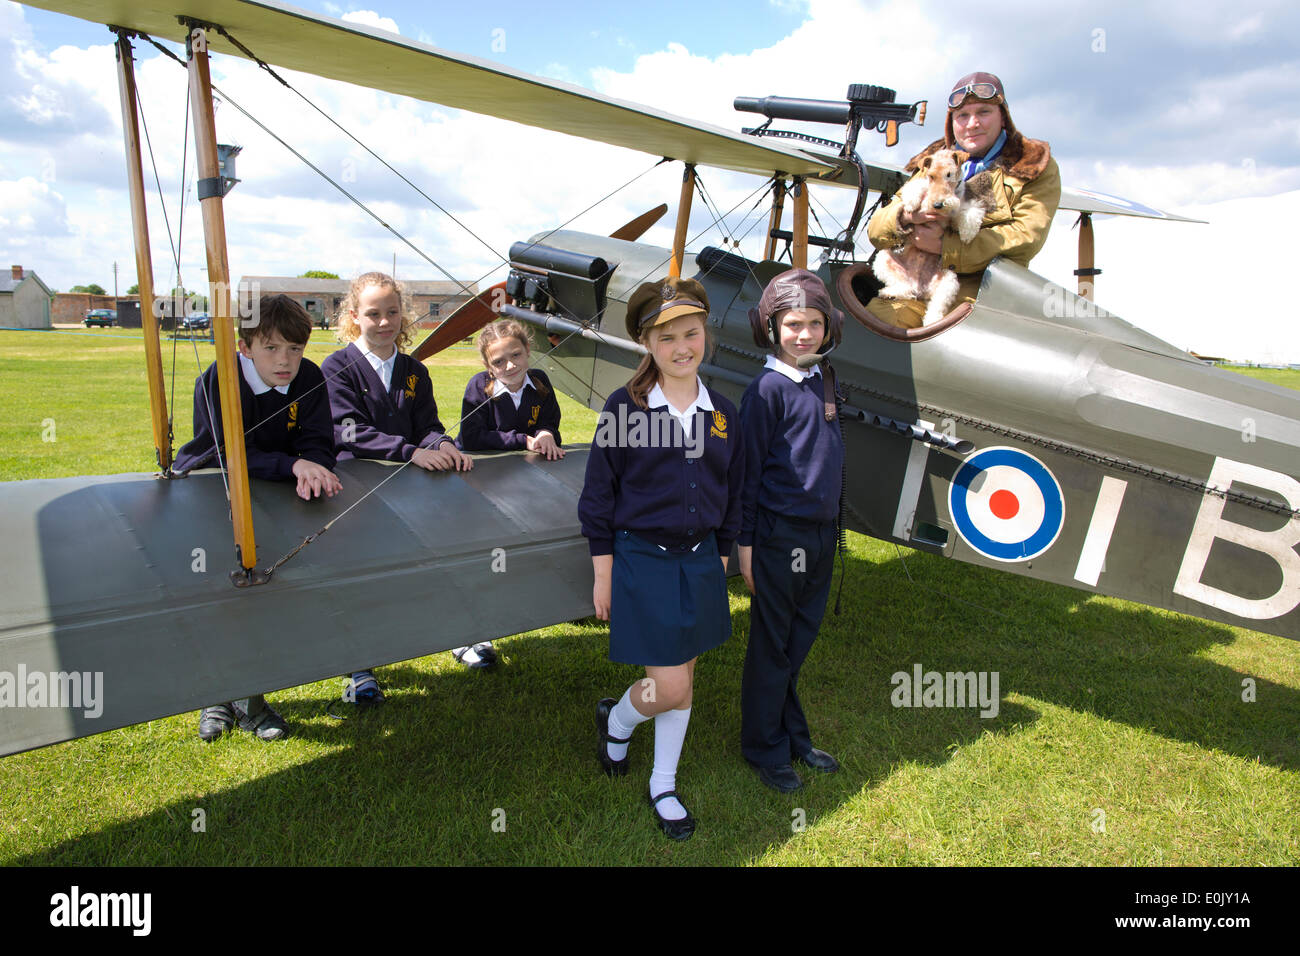 Stow Maries Aerodrome, UK. 14th May, 2014. Commemoration of Edgar Roberts WWI Royal Flying Corps Pilot accompanied on his fighter pilot missions by his terrier Mersea Mick. Picture shows pupils (l-r) Ben Rumble, Zoe Clegg, Amber Jones, (wearing WWI memorabilia) Alannah Murrel and Cameron Hope from the Mersea Island School visiting Stow Maries Aerodrome gathered around a SE5a replica WWI aorplane alongside pilot (Trevor Poole). Credit:  Clickpics/Alamy Live News - Stock Image